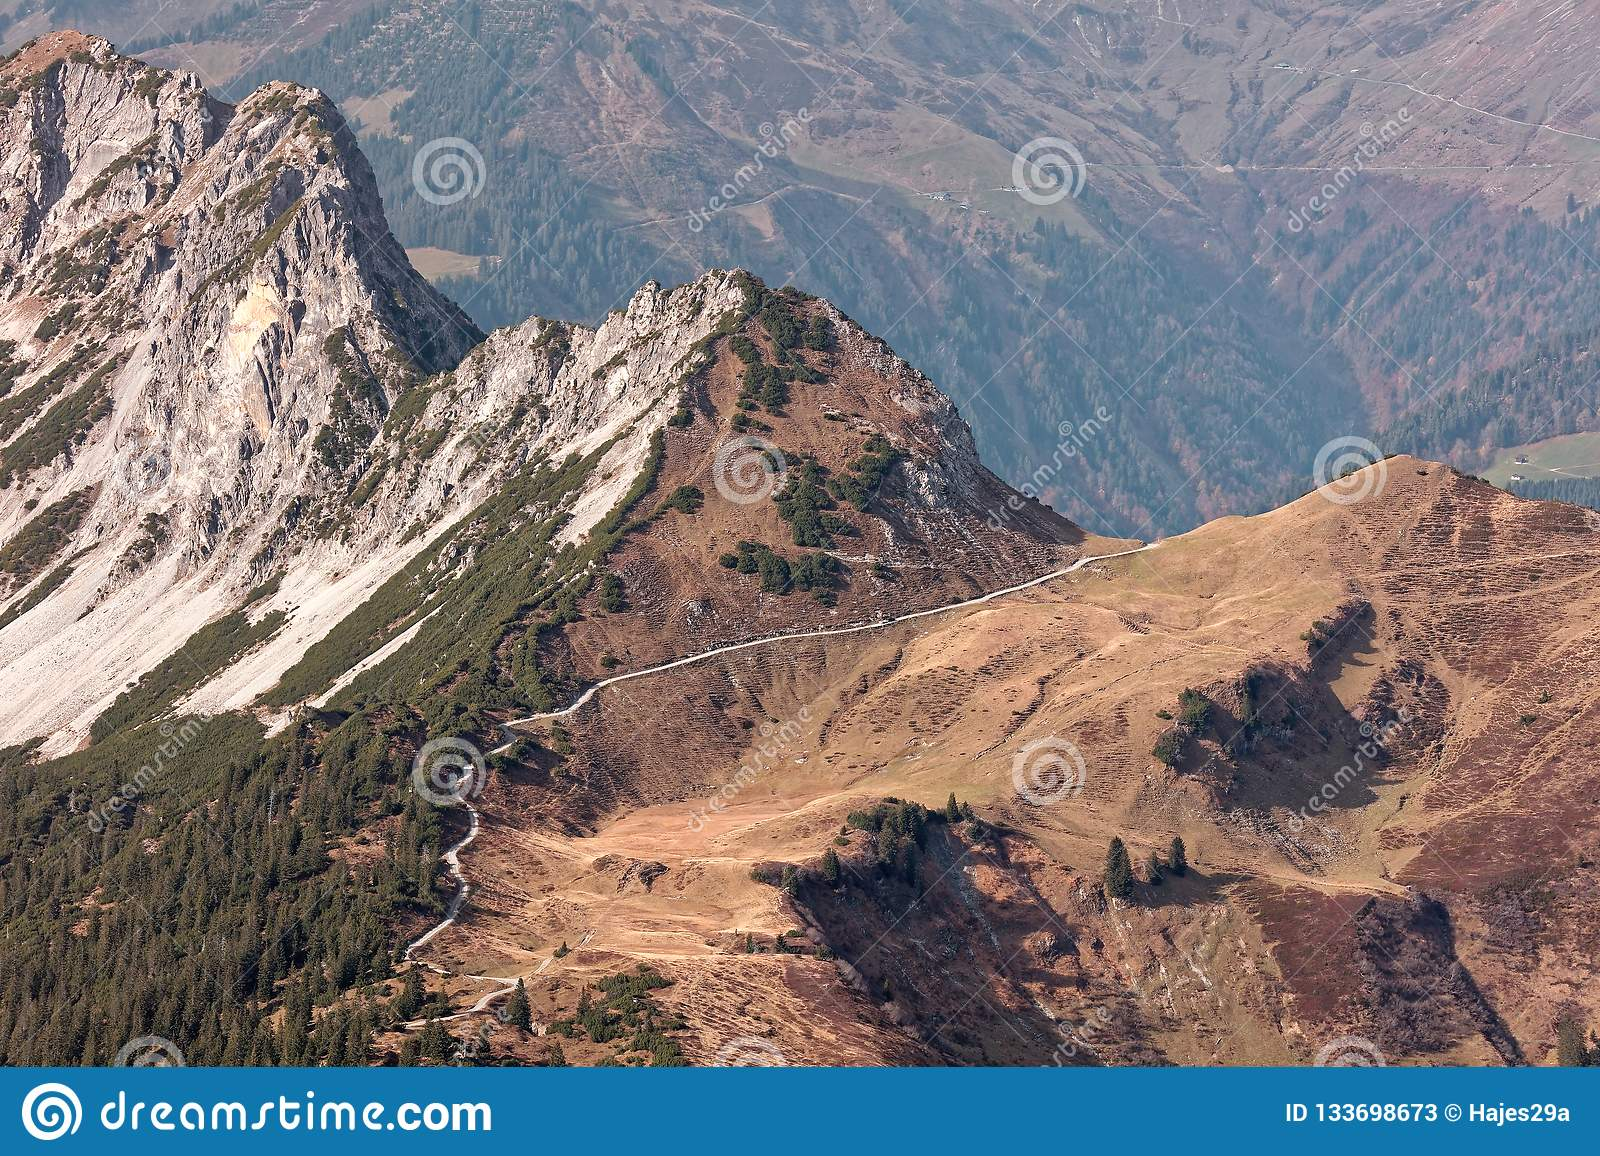 Rote Wand Views From Rote Wand Stock Image Image Of Rock Forrest 133698673